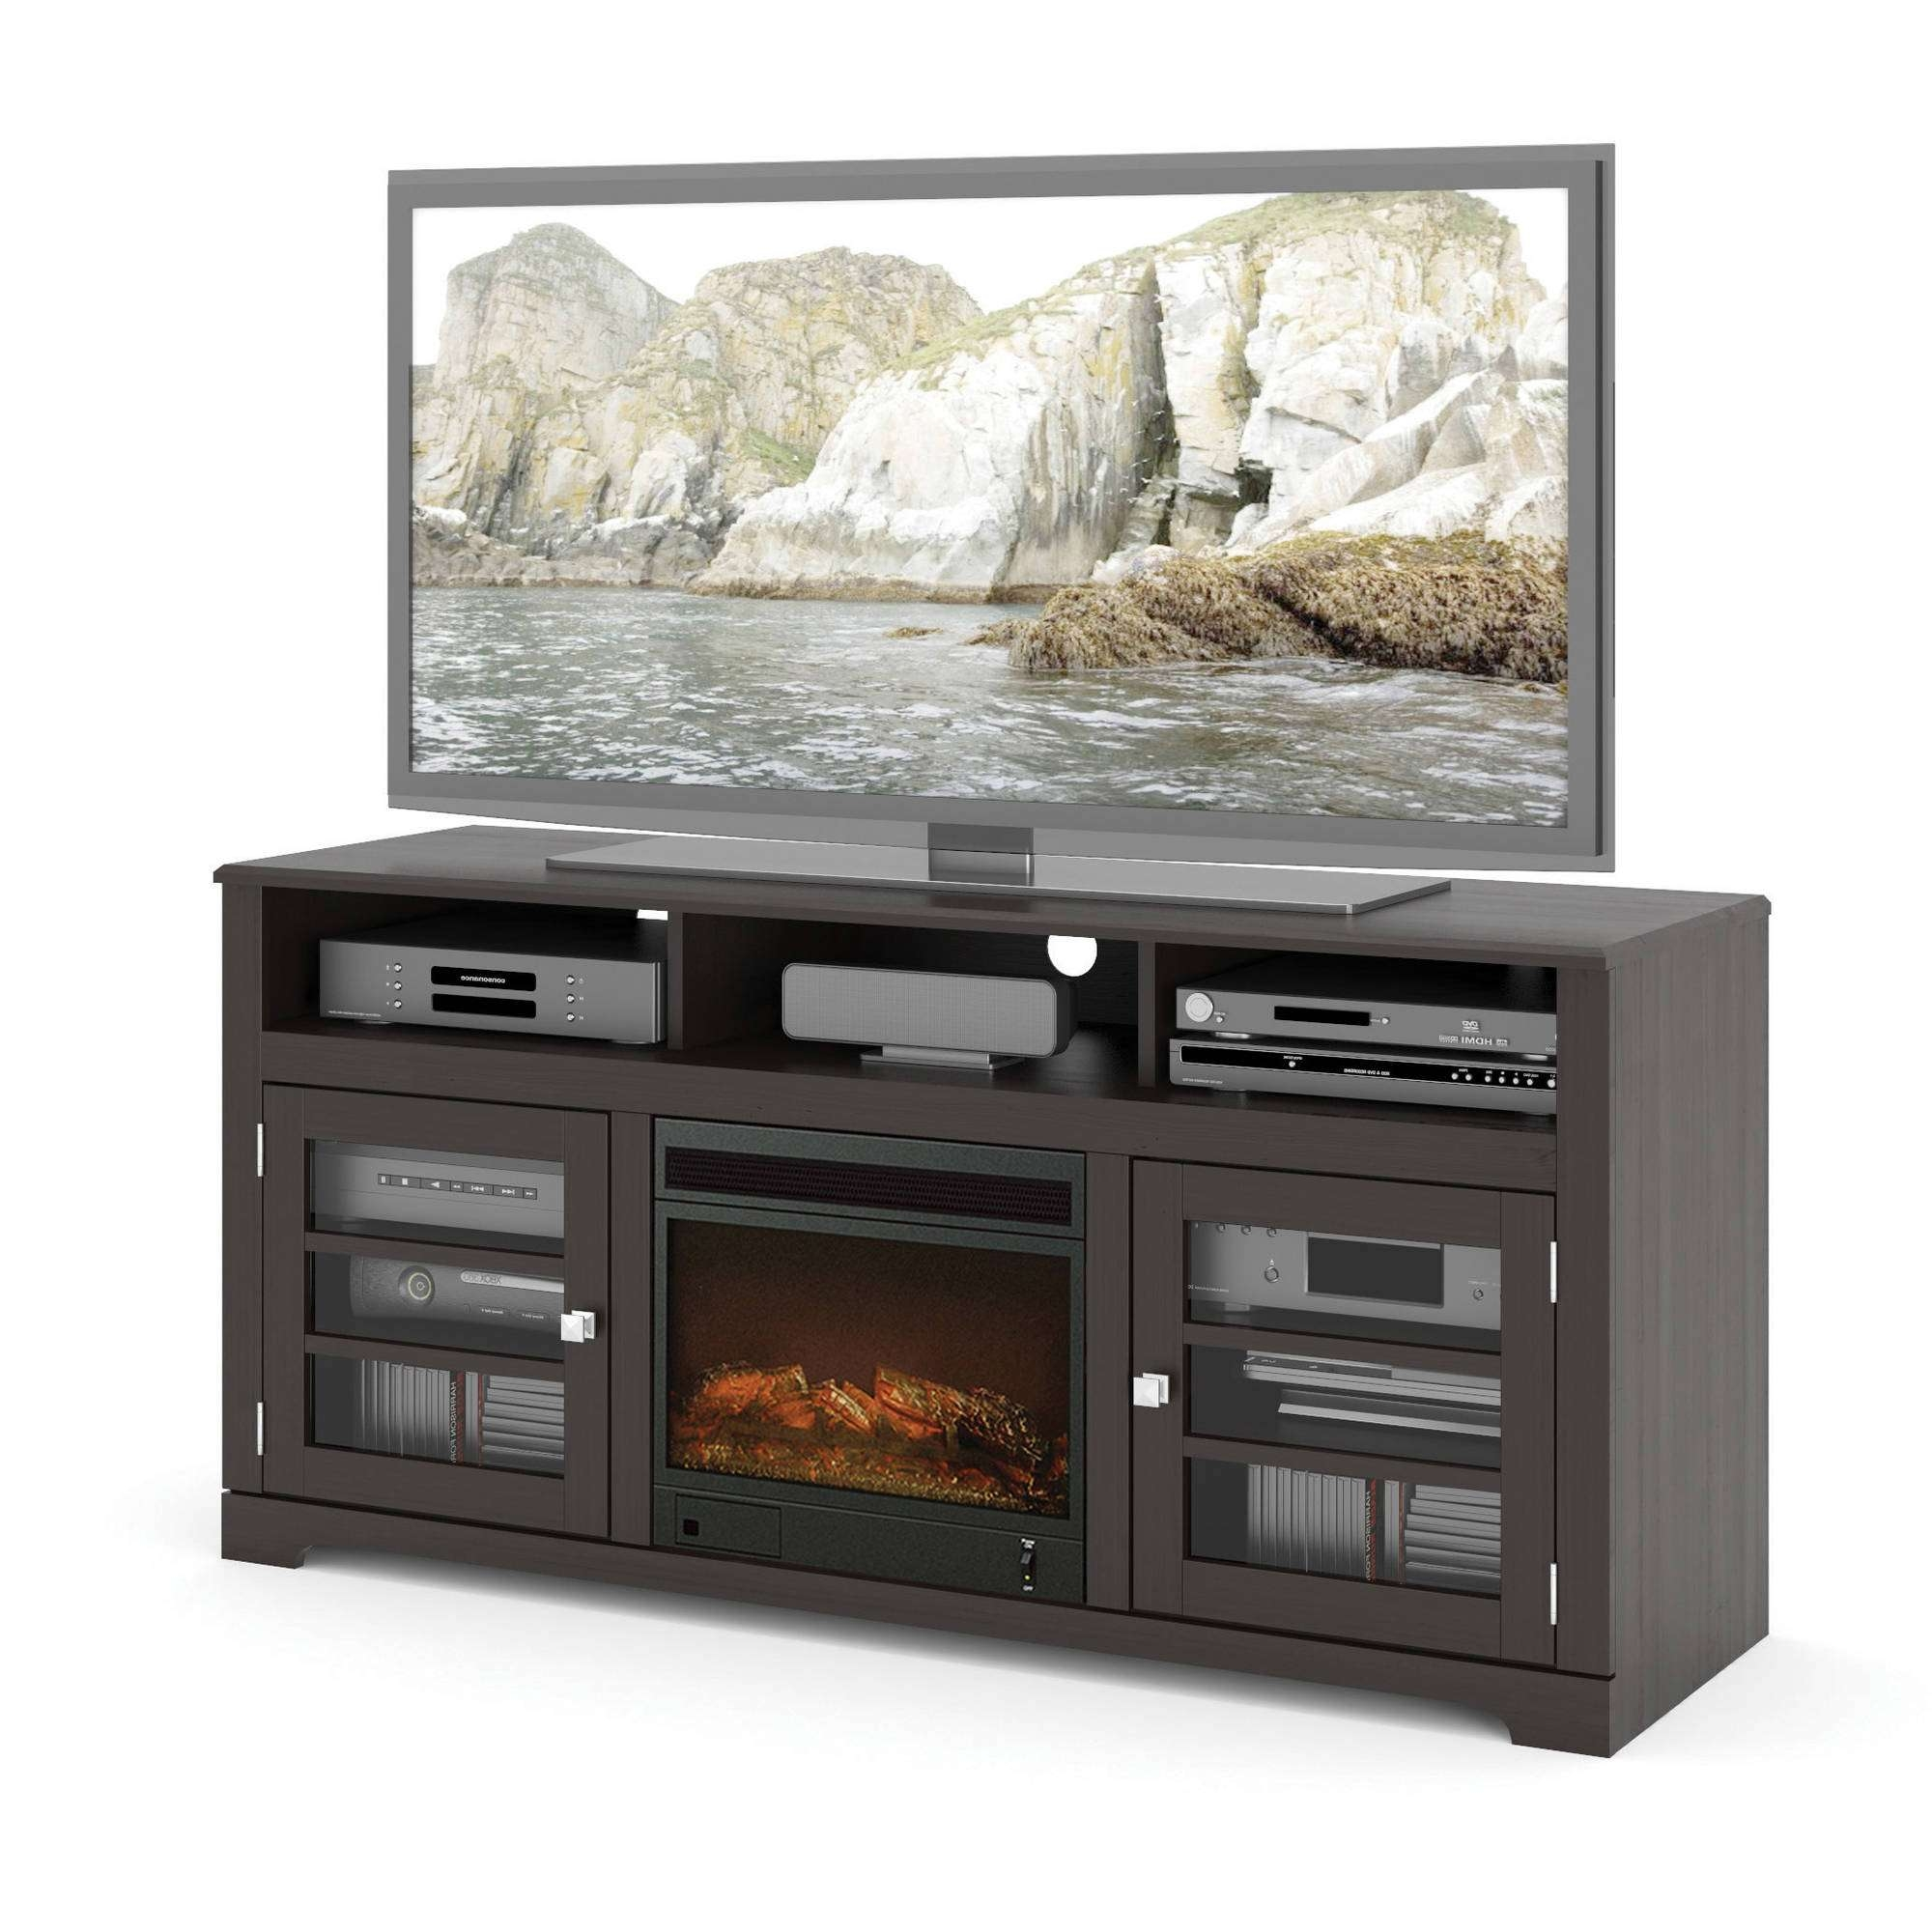 Tv : Tv Stands 100Cm Winsome White Tv Stand 100Cm' Captivating 100 Pertaining To Tv Stands 100Cm (View 12 of 15)